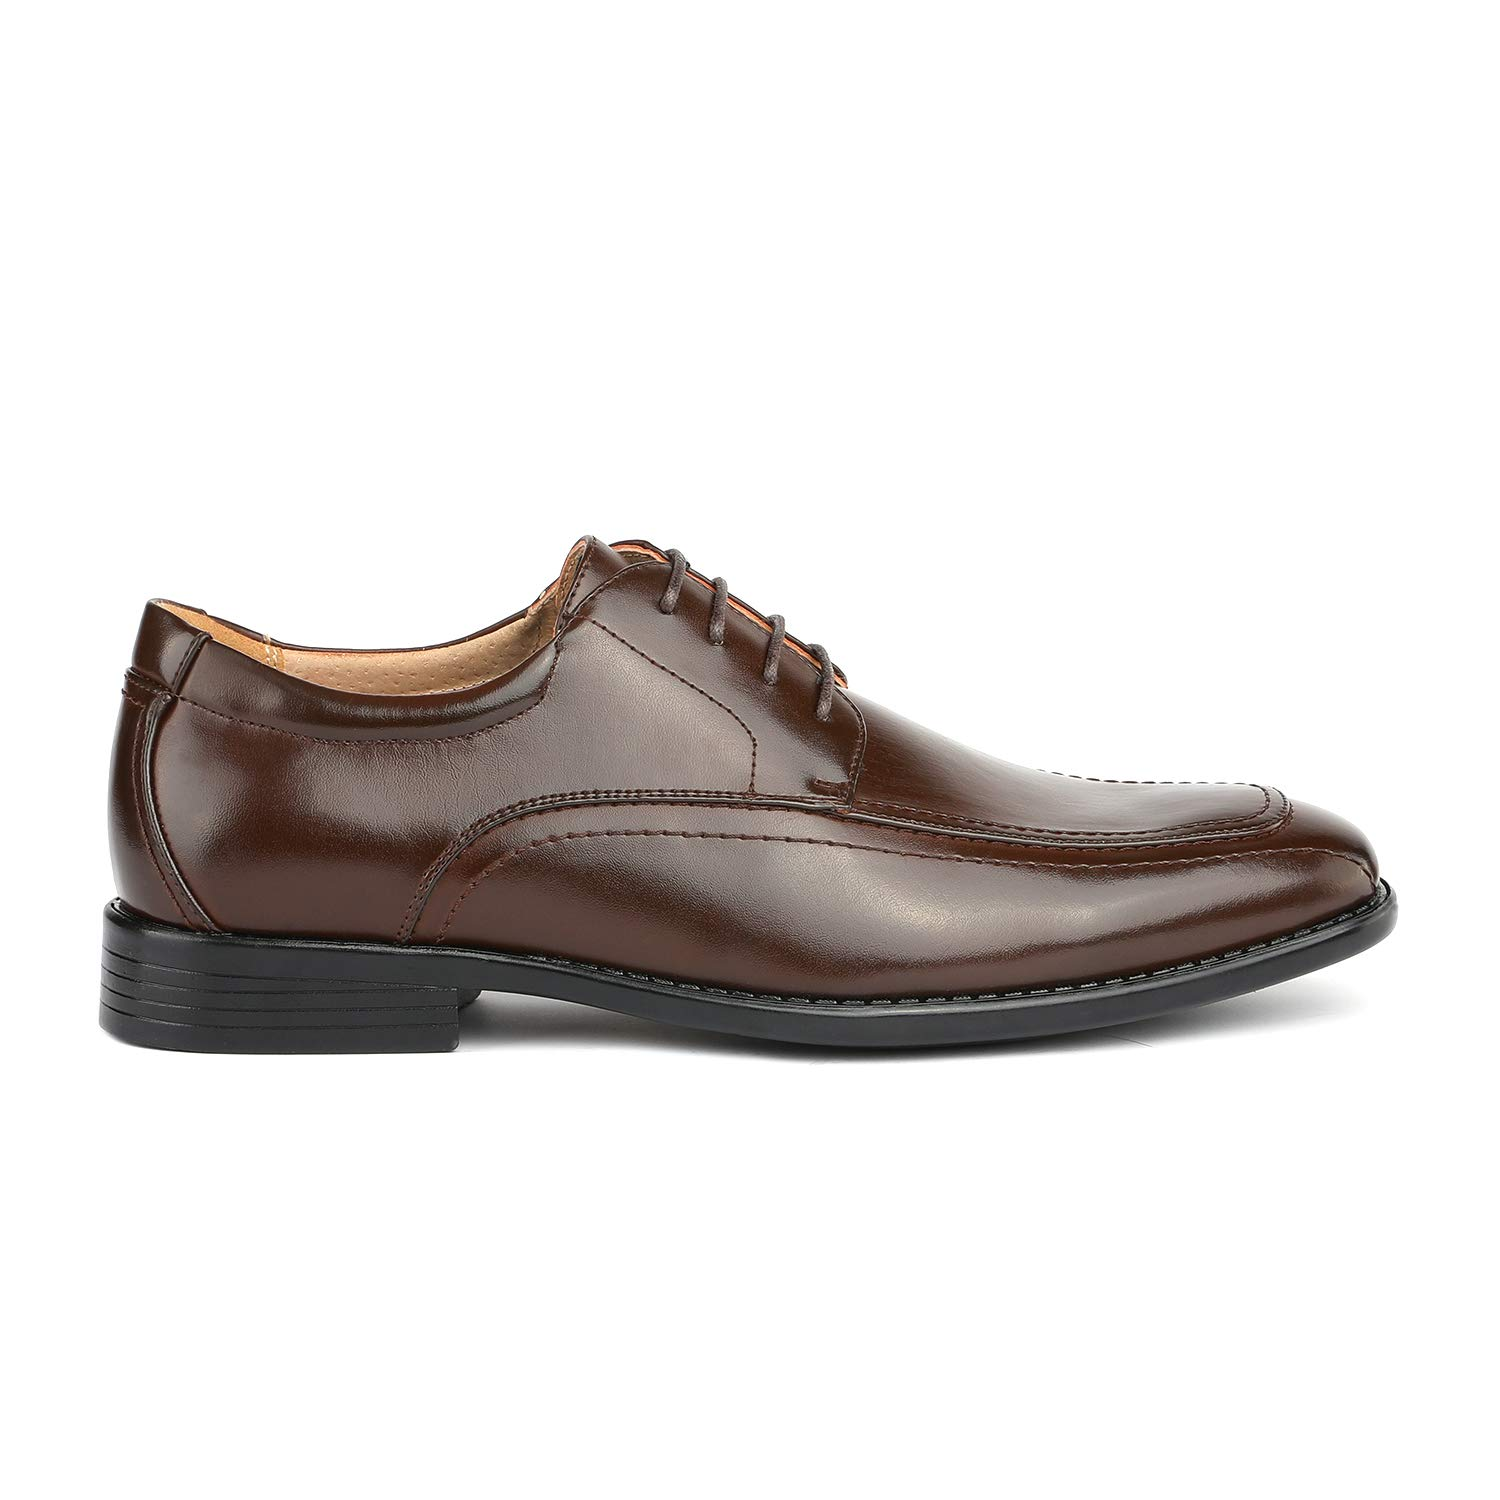 Bruno Marc Mens Leather Dress Shoes Formal Classic Lace-up Business Oxfords Shoe